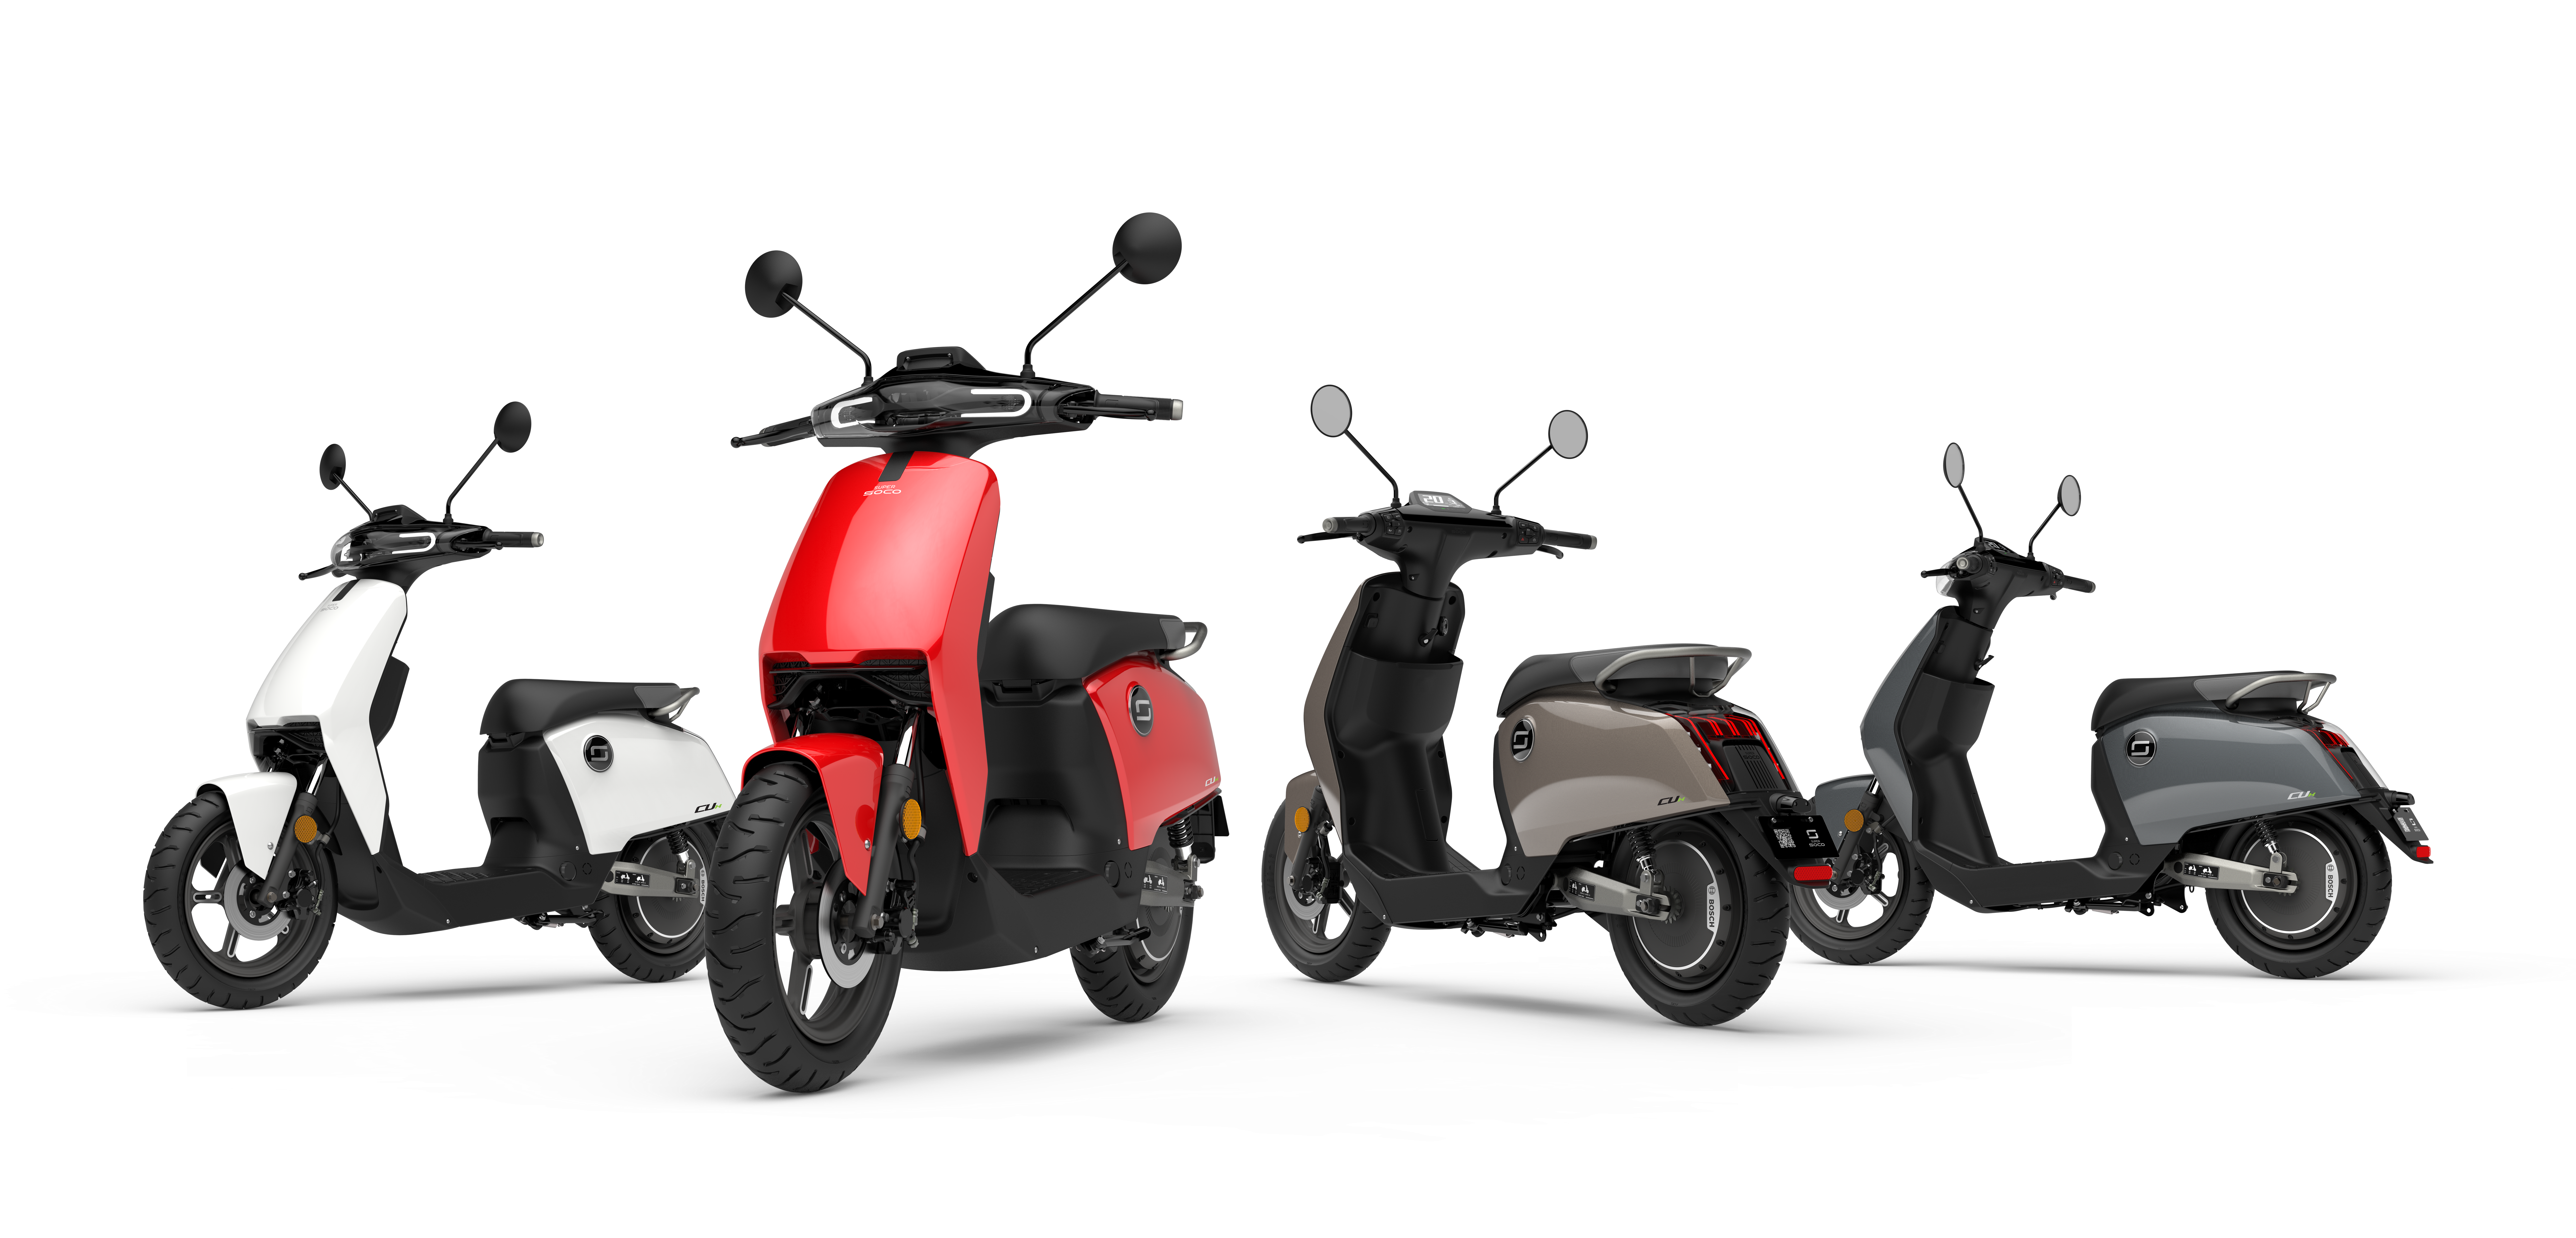 Super Soco CUx electric scooter cutout image